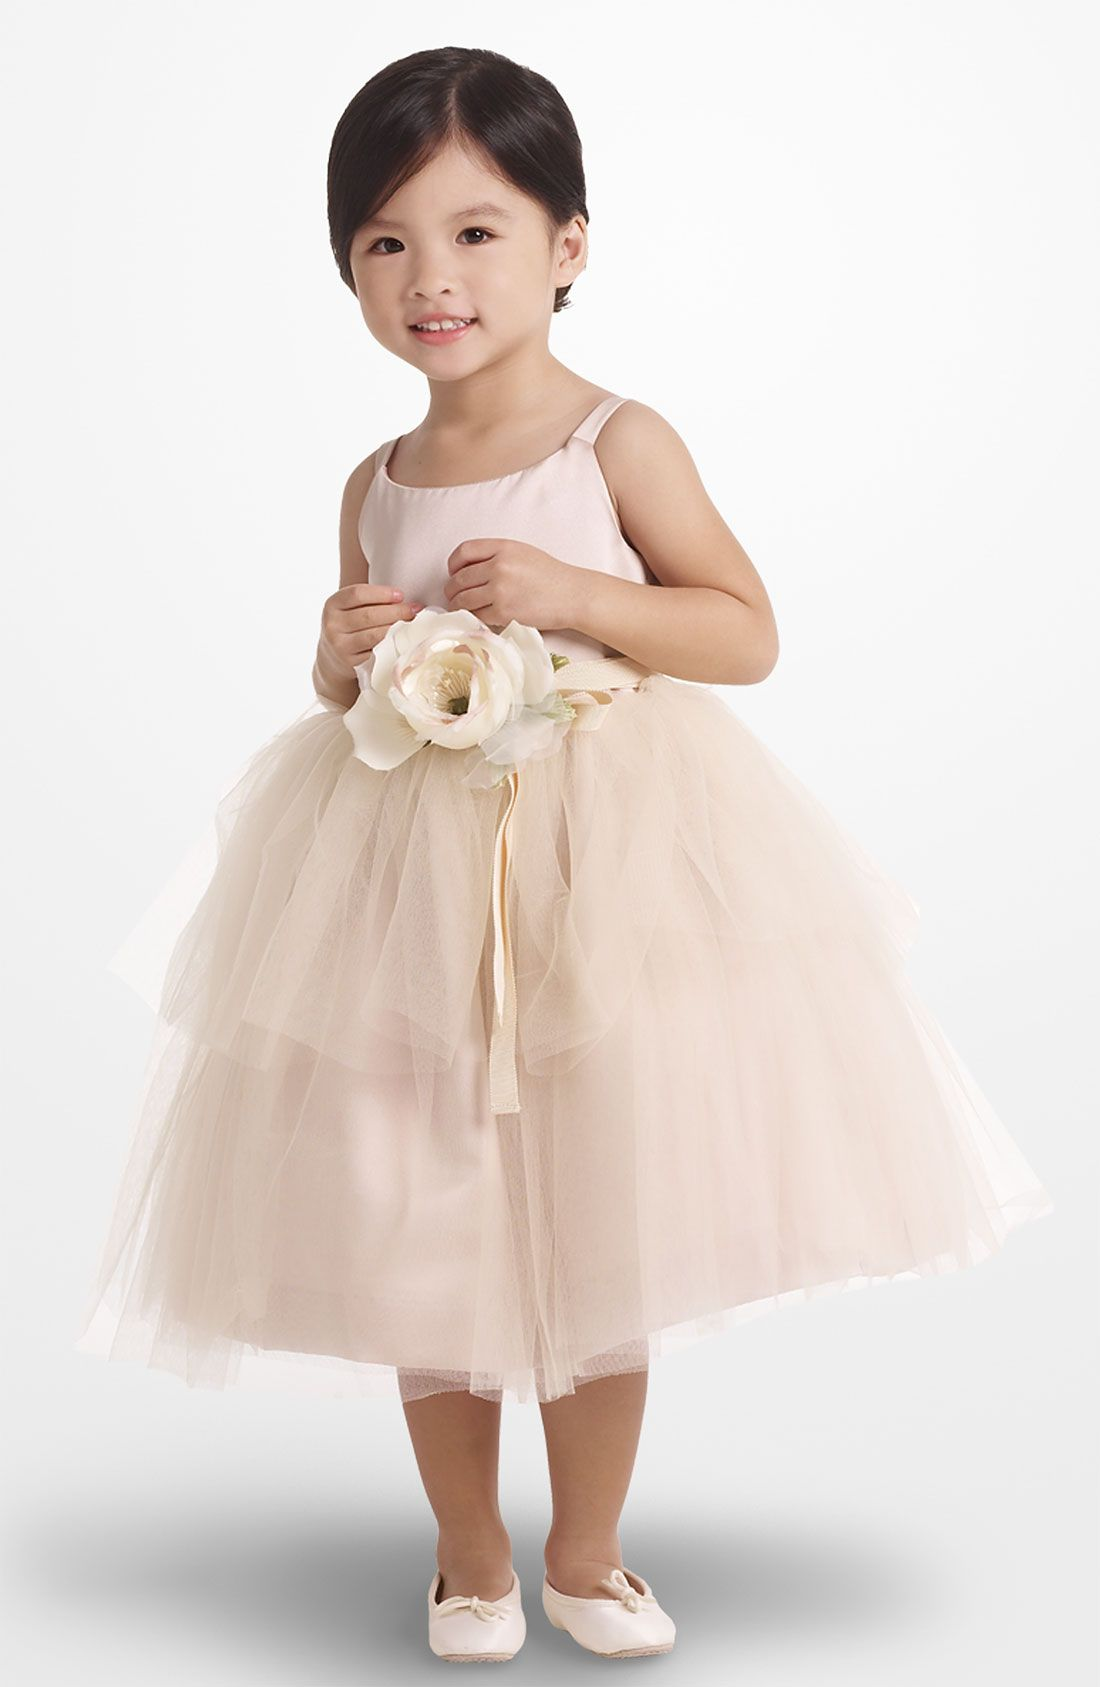 The Sweetest Flower Girl Dress Simple And High Quality Love The